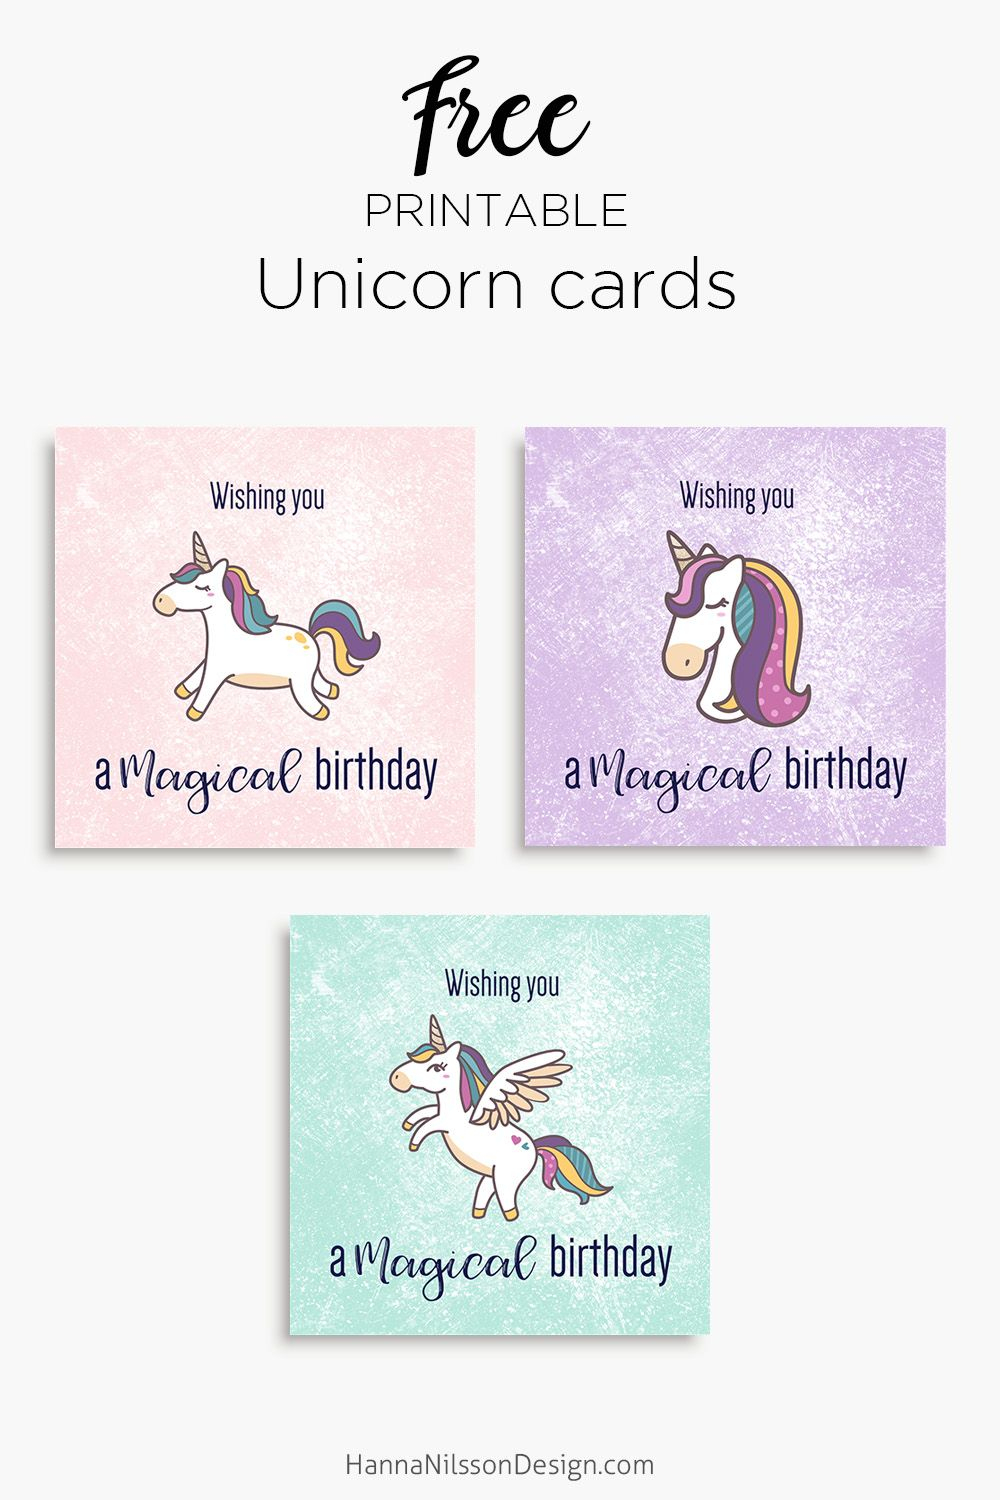 Magical Unicorn Birthday Printable Cards | Tis' Better To Give - Free Printable Easter Cards For Grandchildren